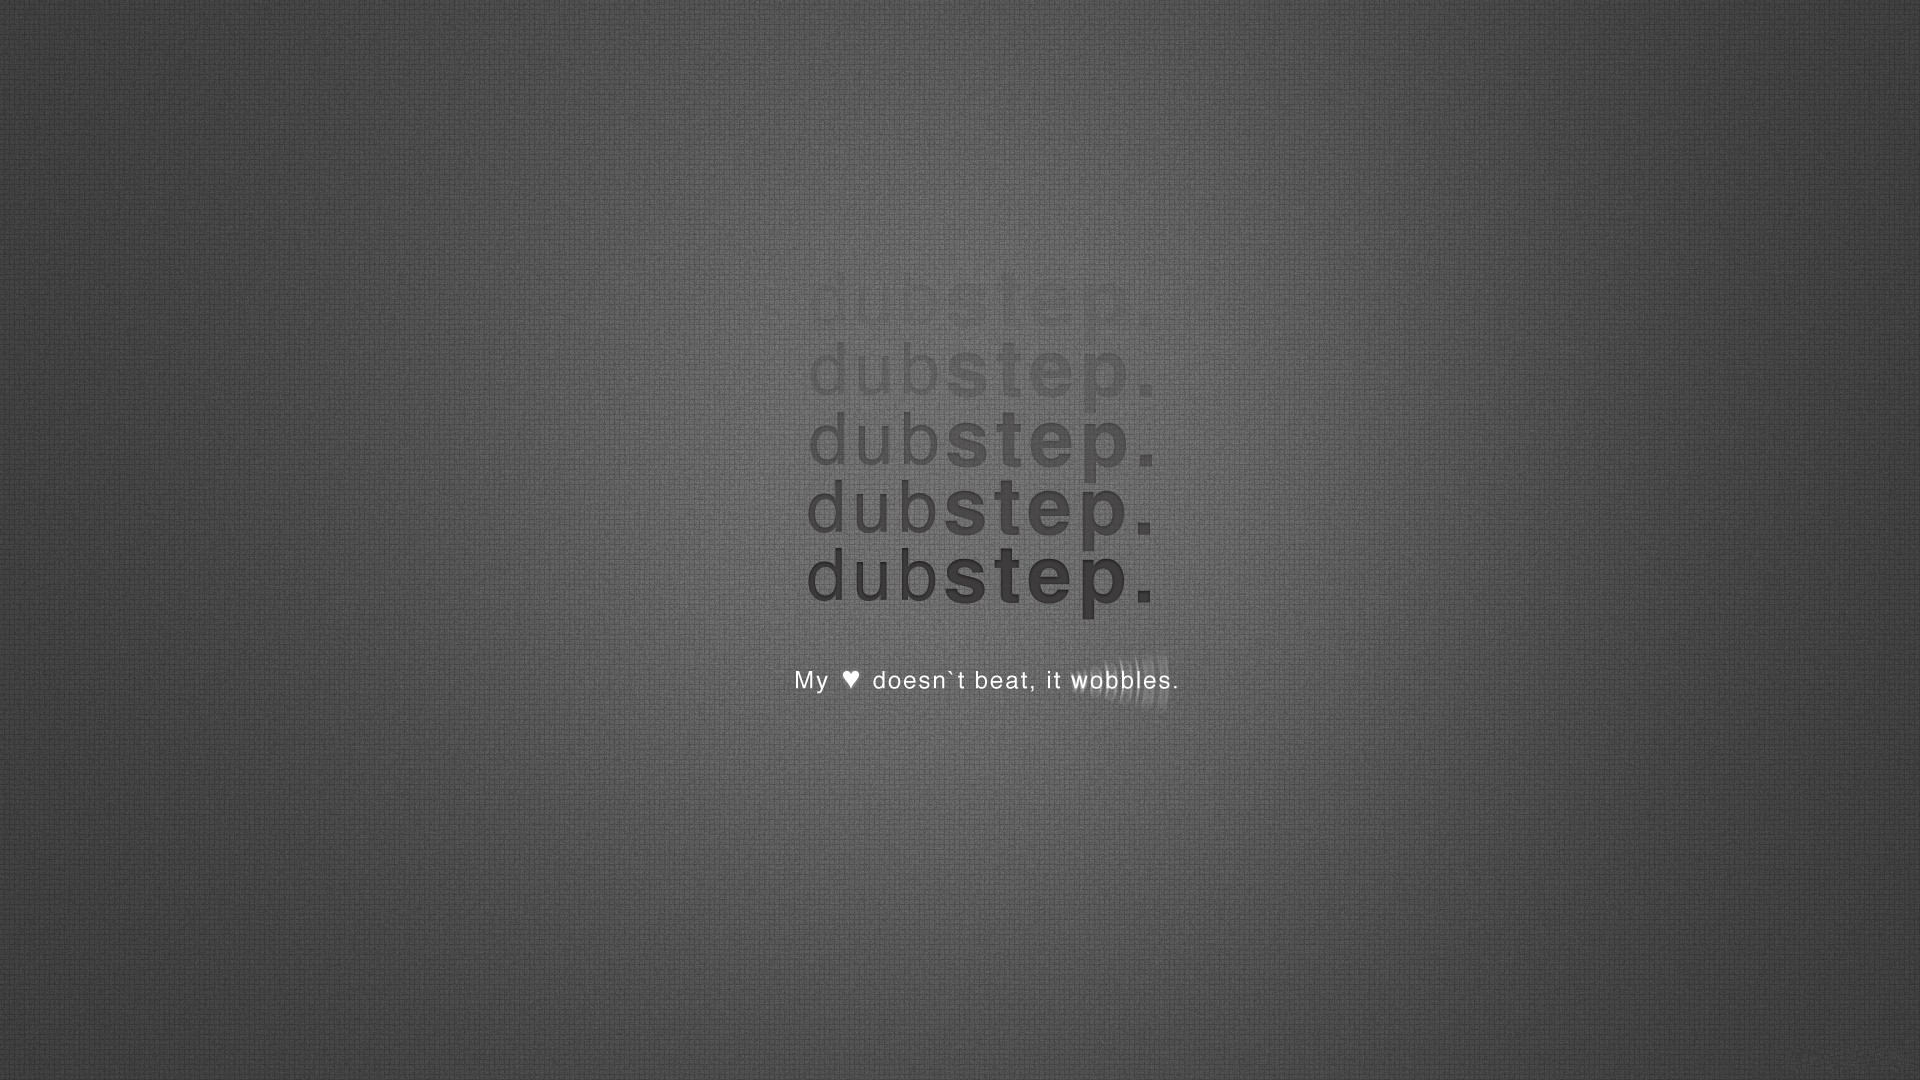 Dubstep hd music 4k wallpapers images backgrounds photos and dubstep voltagebd Gallery